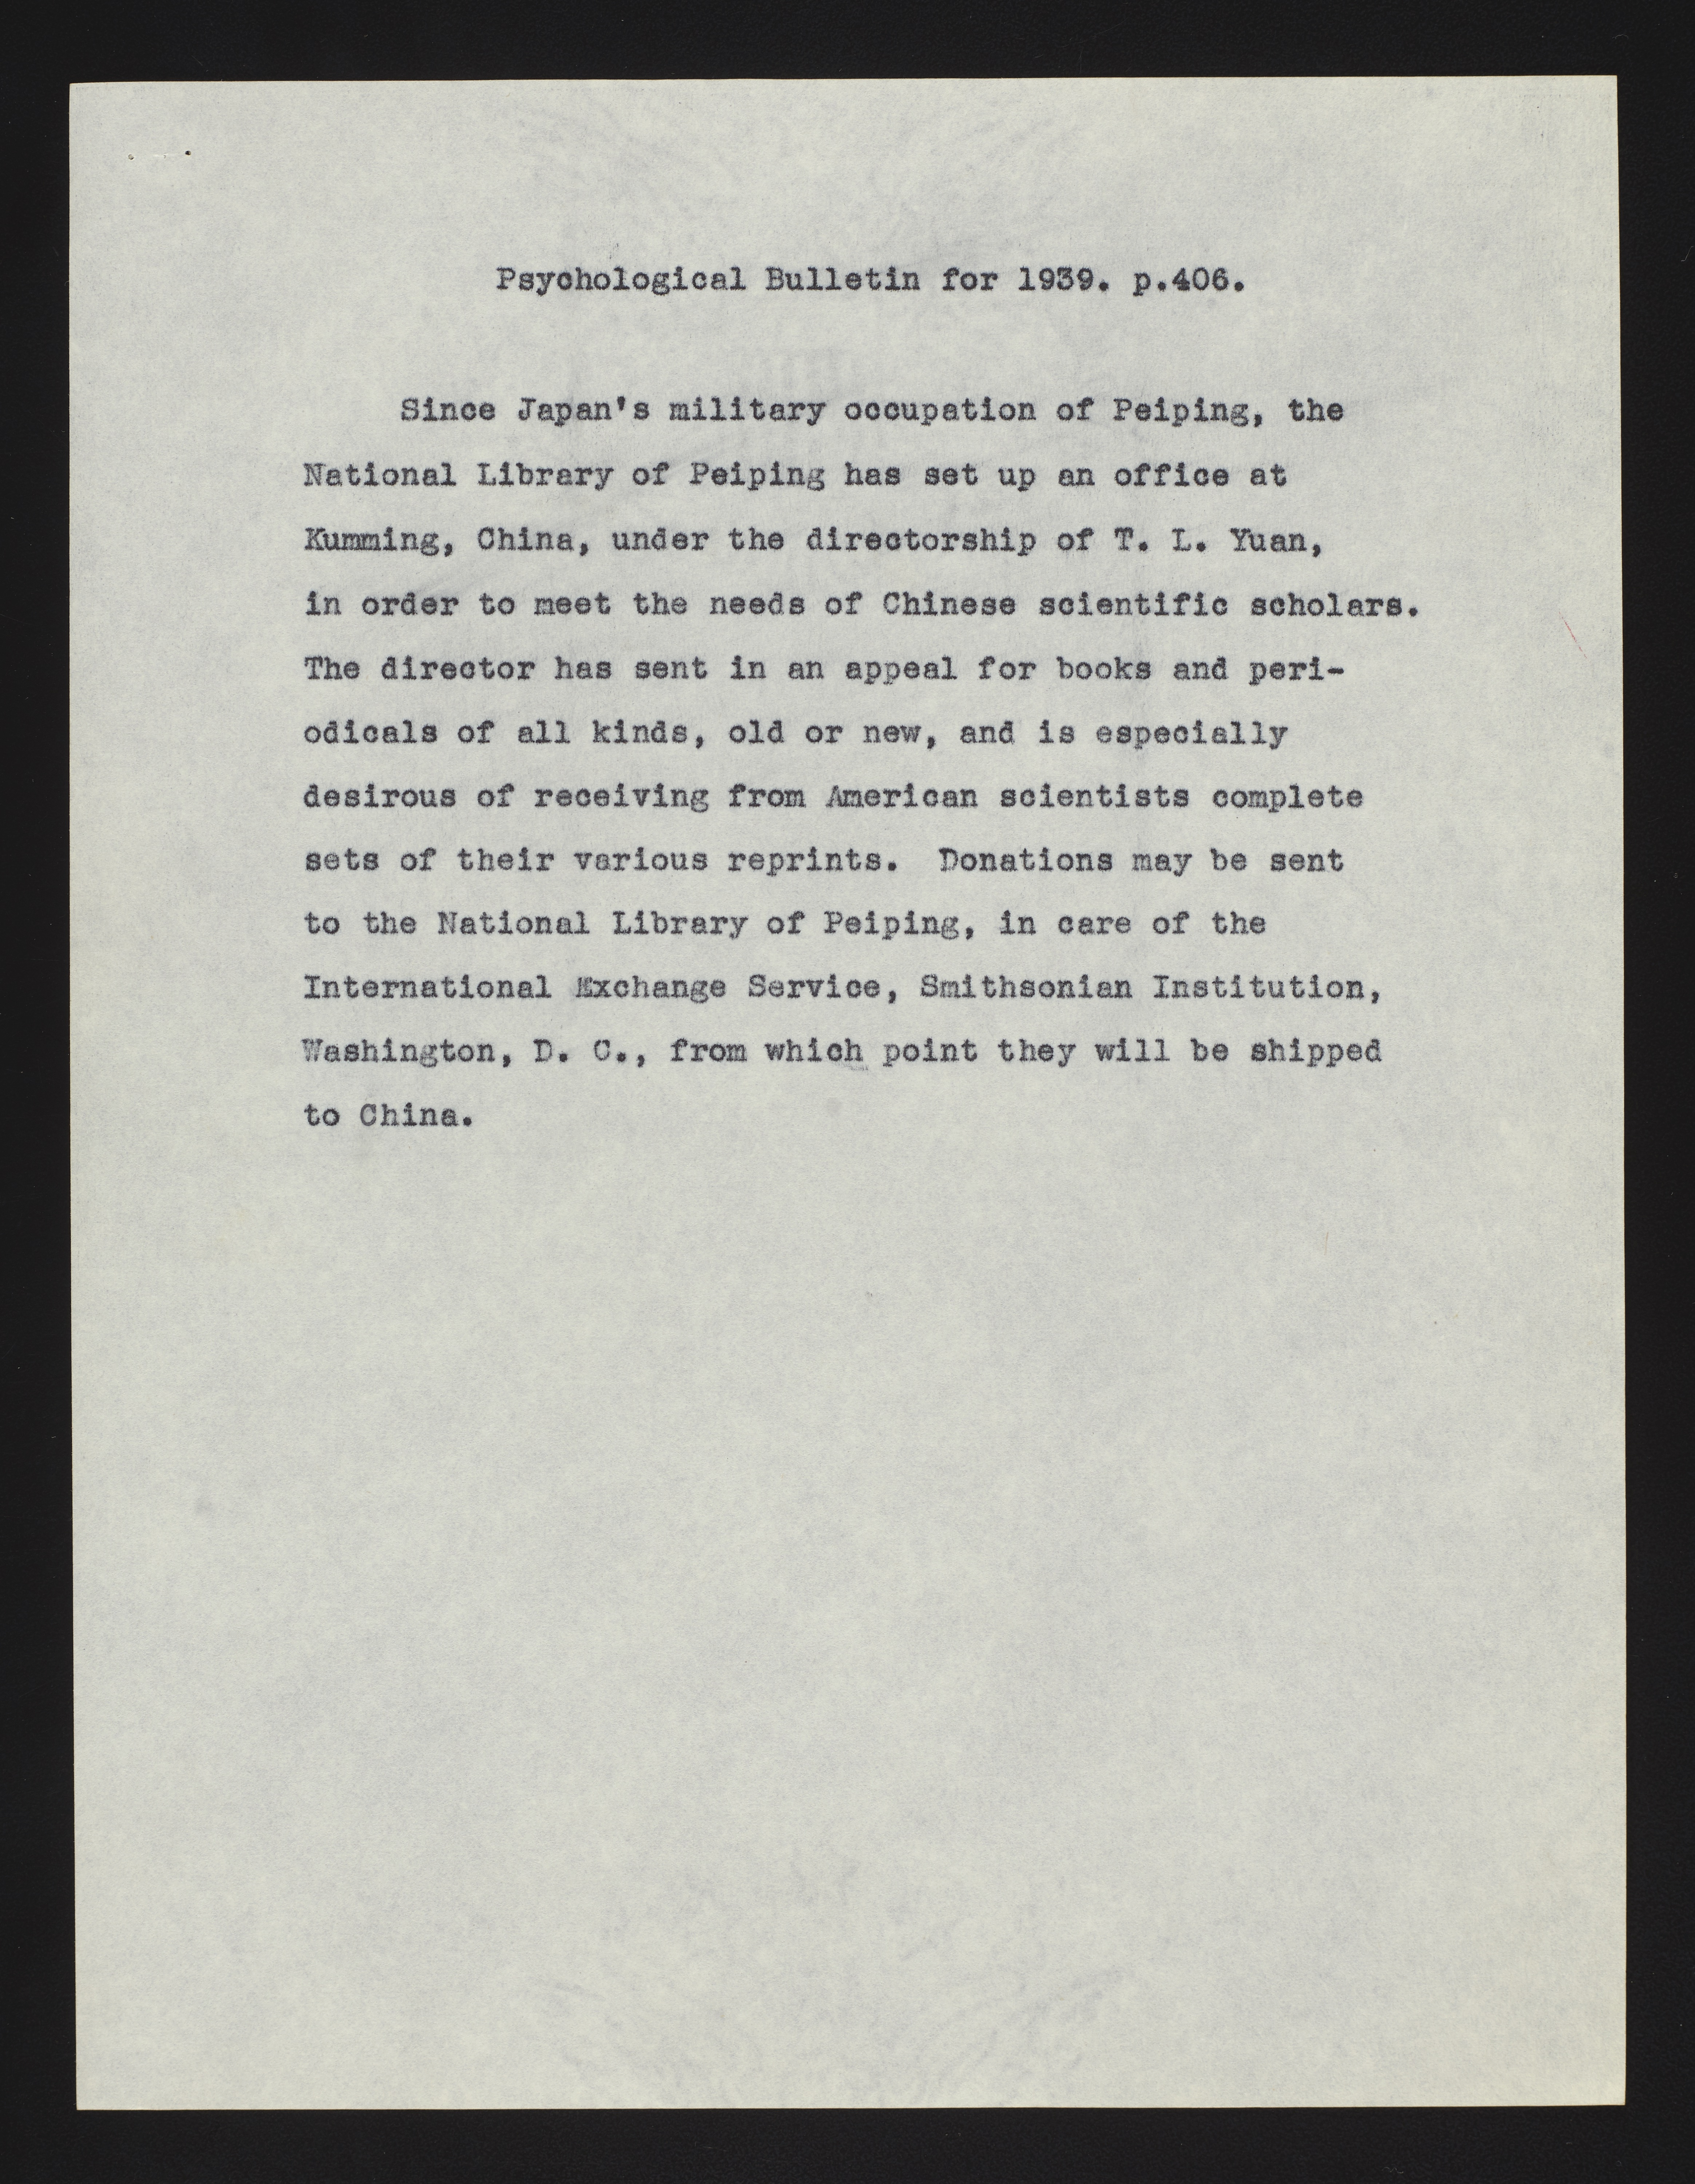 Bulletin that was attached to a piece of correspondence. Describes the relocation of the National Li